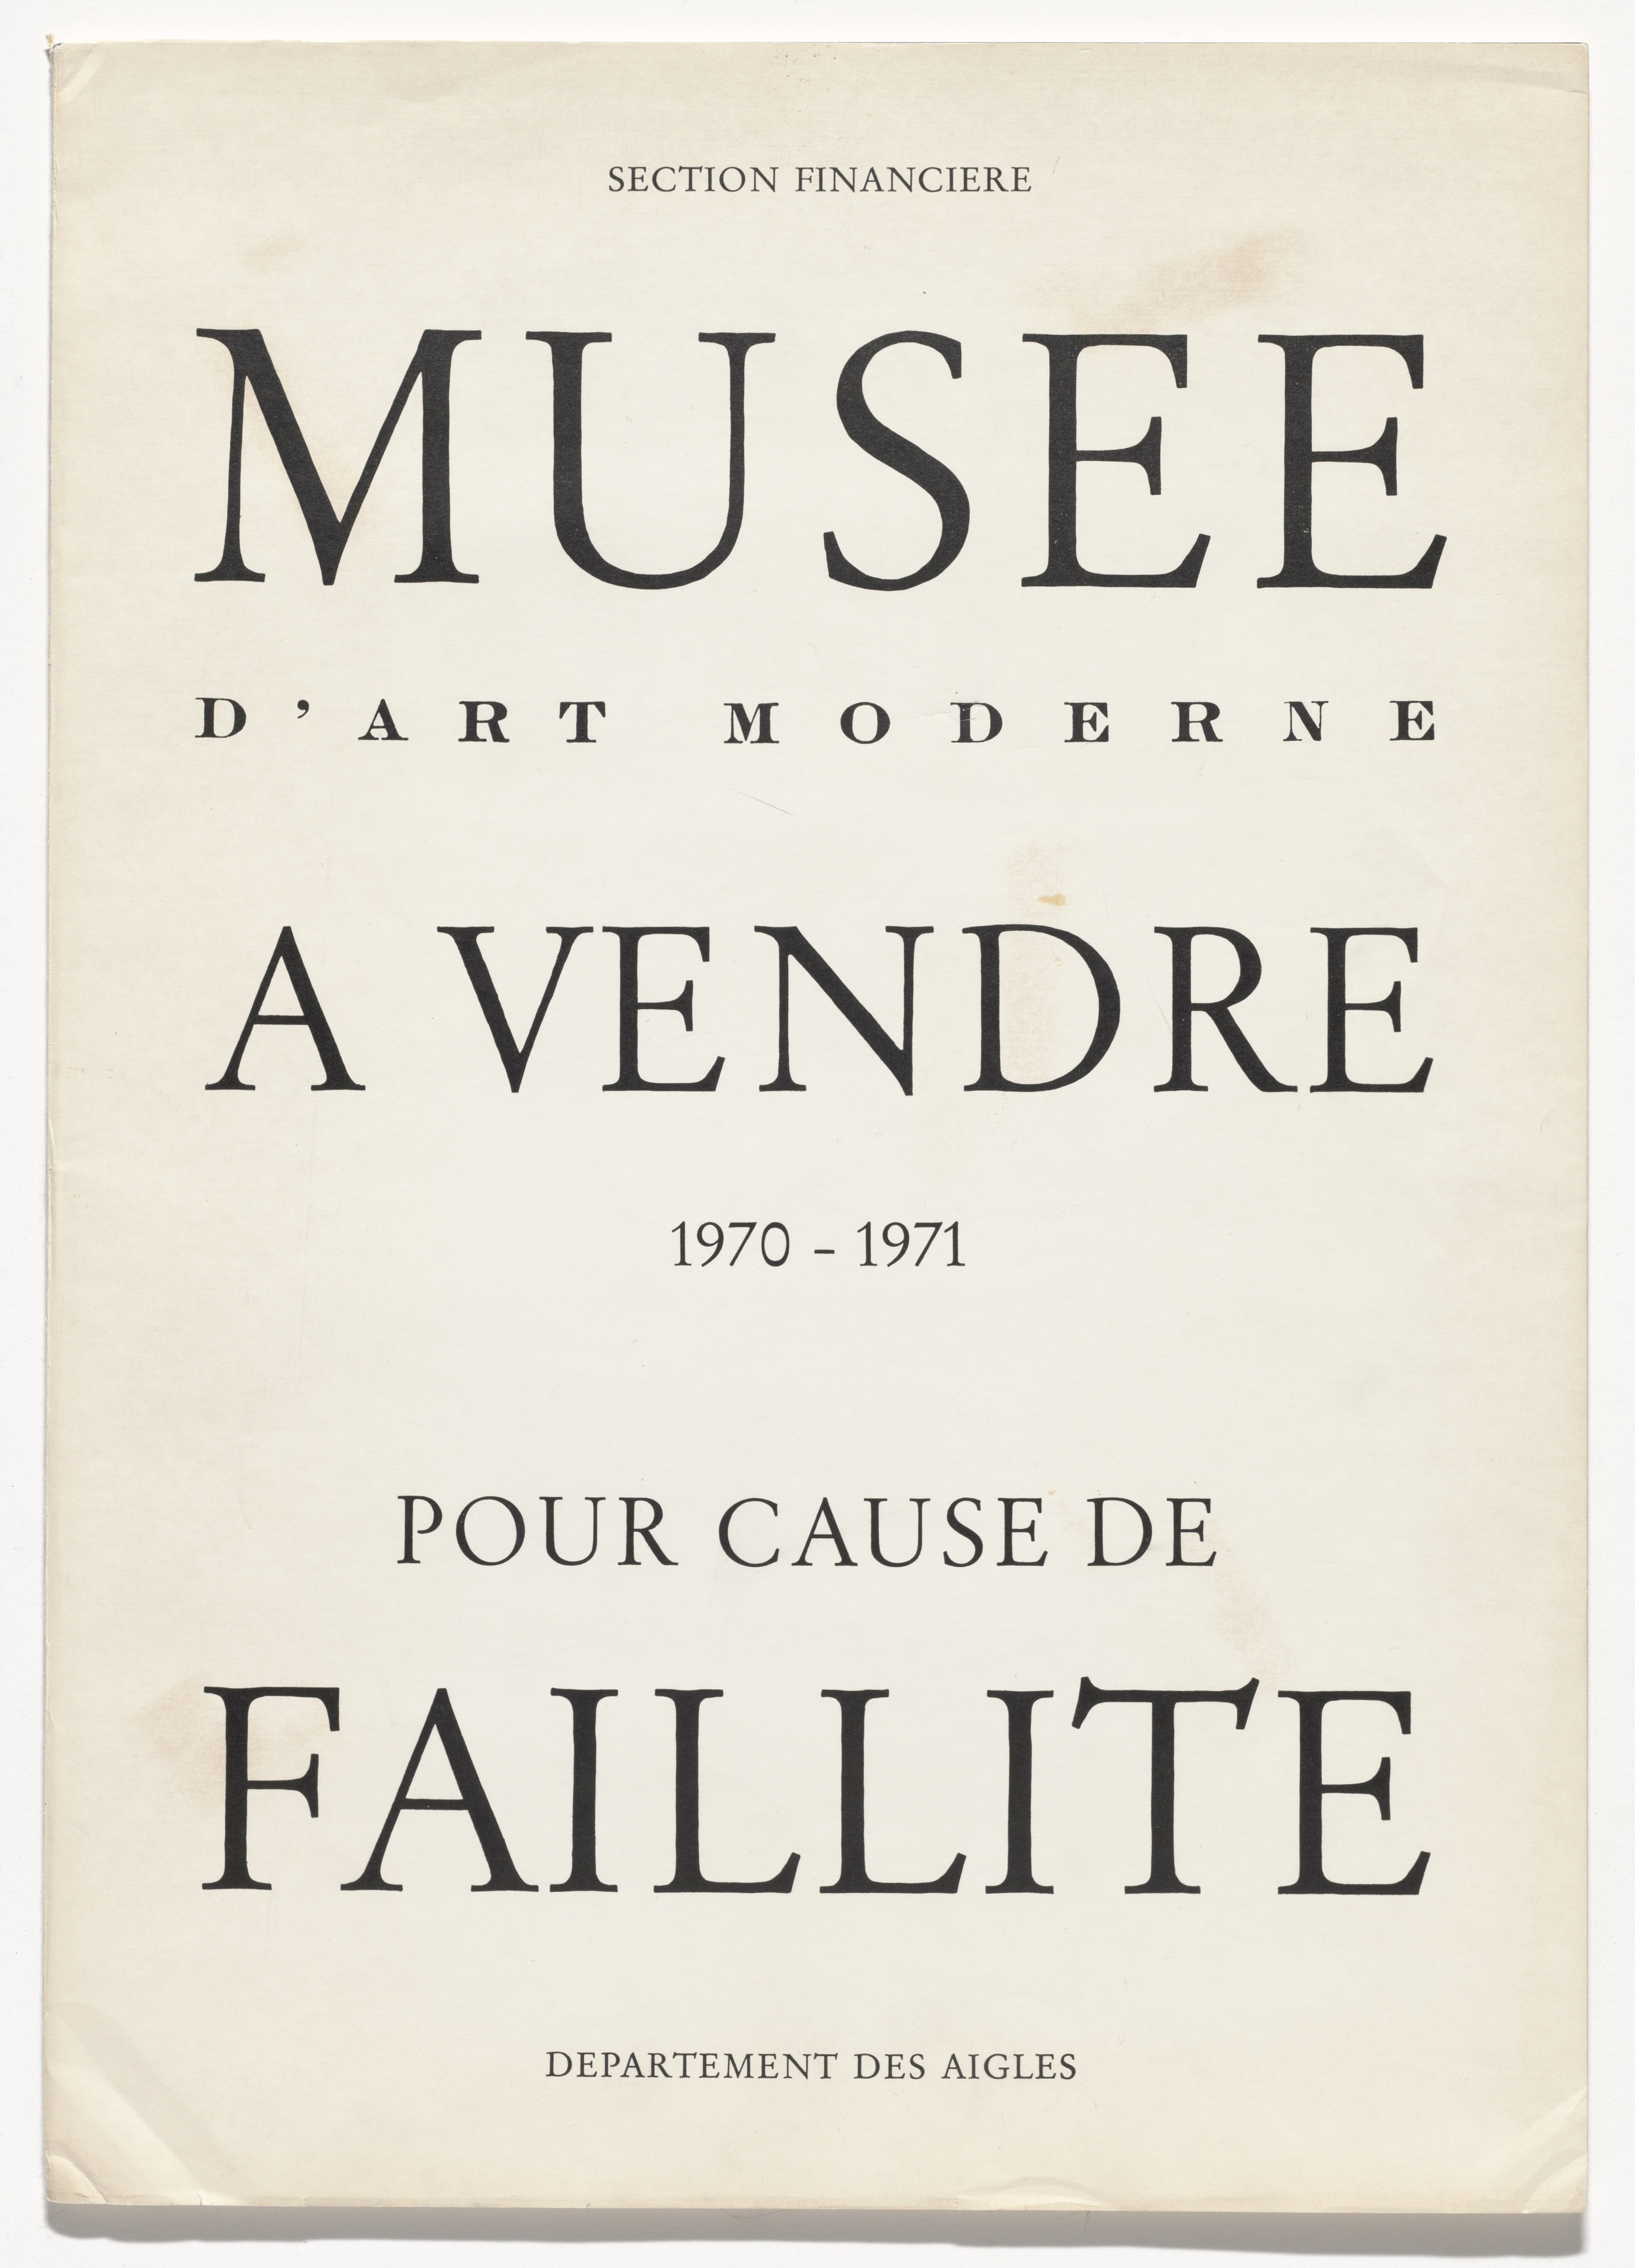 Marcel Broodthaers (Belgian, 1924–1976). Musée d'Art Moderne à vendre–pour cause de faillite (Museum of Modern Art for sale–due to bankruptcy). 1970–71. Artist's book, letterpress dust jacket wrapped around catalogue of Kӧlner Kunstmarkt '71 (Cologne: Kӧlner Kunstmarkt, 1971), with artist's inscriptions, overall (folded, with catalog): 17 11/16 x 12 5/8 x 5/16 in. (45 x 32 x 0.8 cm). Publisher: Galerie Michael Werner, Cologne. Edition: 19. The Museum of Modern Art, New York. Partial gift of the Daled Collection and partial purchase through the generosity of Maja Oeri and Hans Bodenmann, Sue and Edgar Wachenheim III, Agnes Gund, Marlene Hess and James D. Zirin, Marie-Josée and Henry R. Kravis, and Jerry I. Speyer and Katherine G. Farley, 2011. © 2016 Estate of Marcel Broodthaers / Artists Rights Society (ARS), New York / SABAM, Brussels